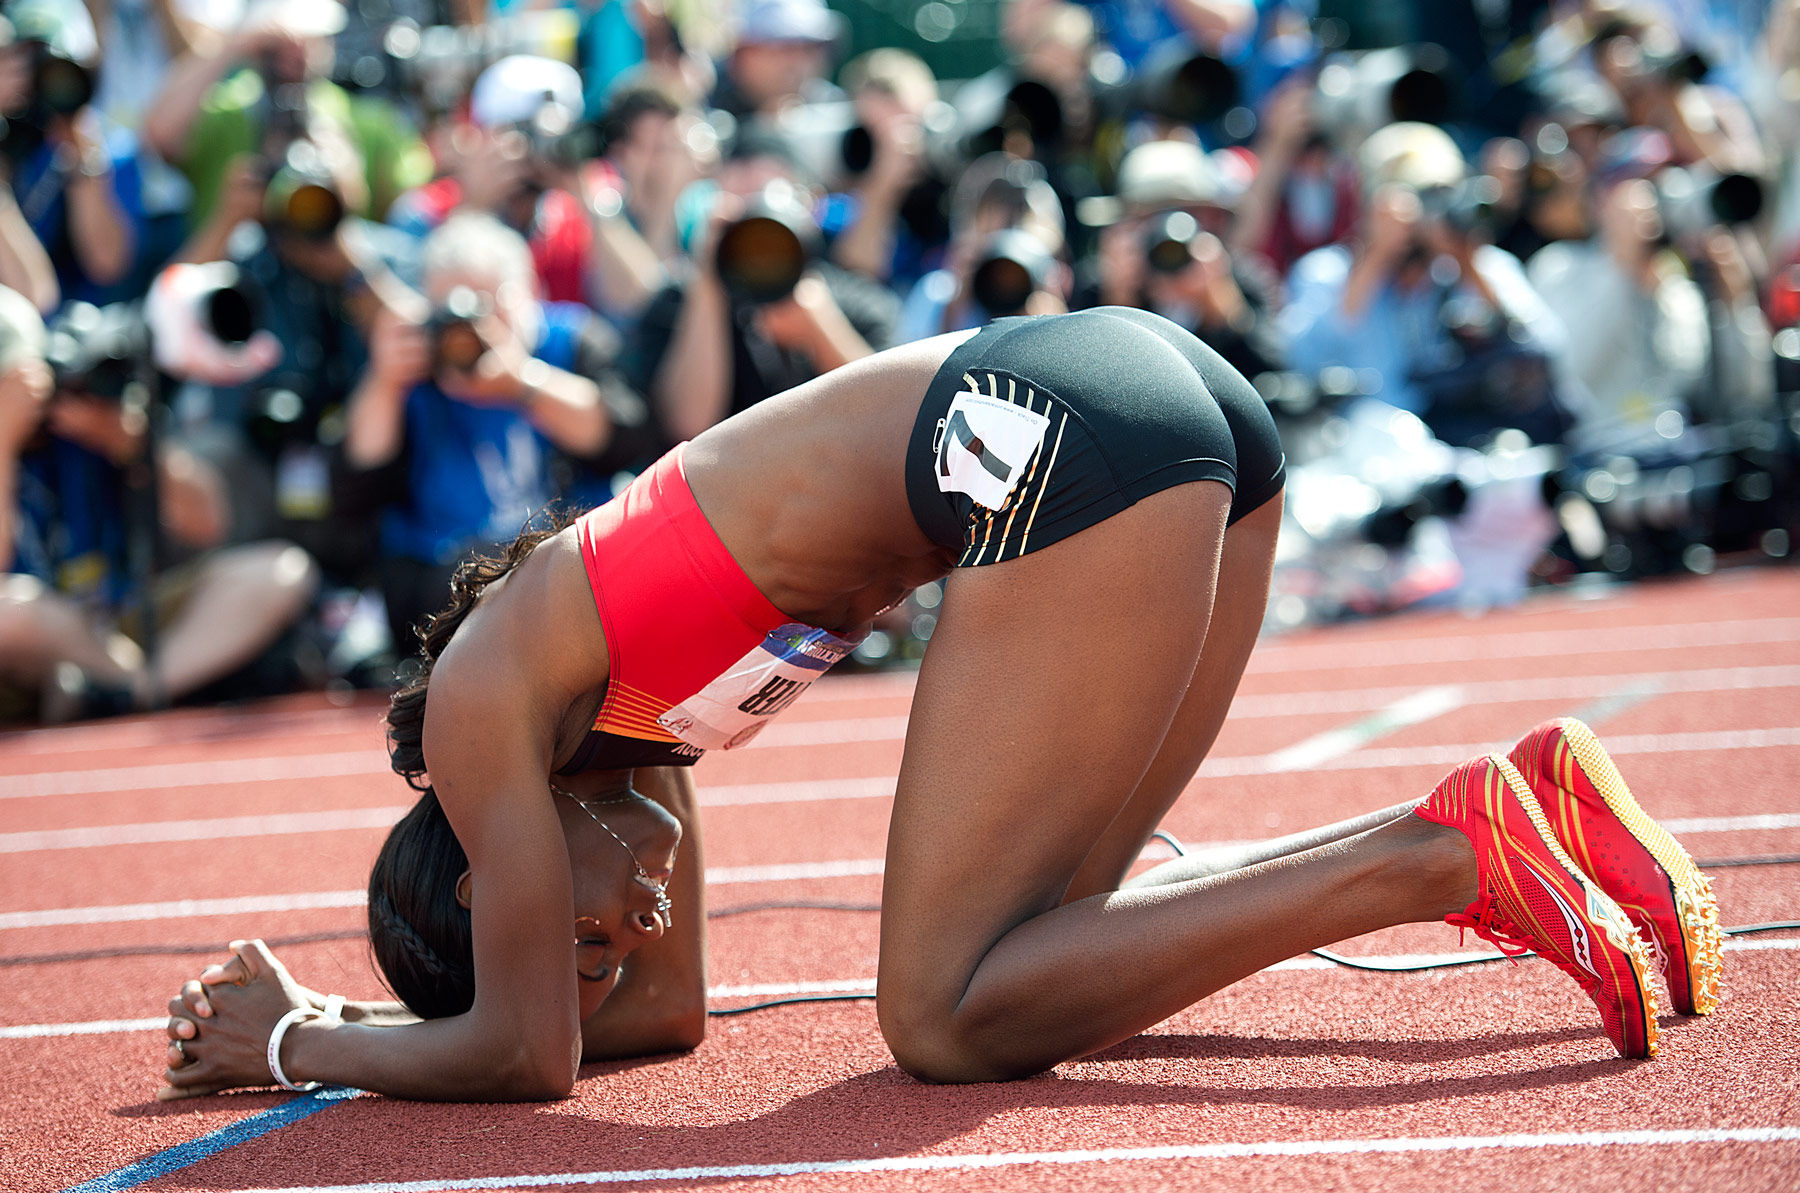 1ustrials_2012_eugene_dee_dee_trotter_400m_track_and_field_image_jeff_cohen_photography_lb.jpg